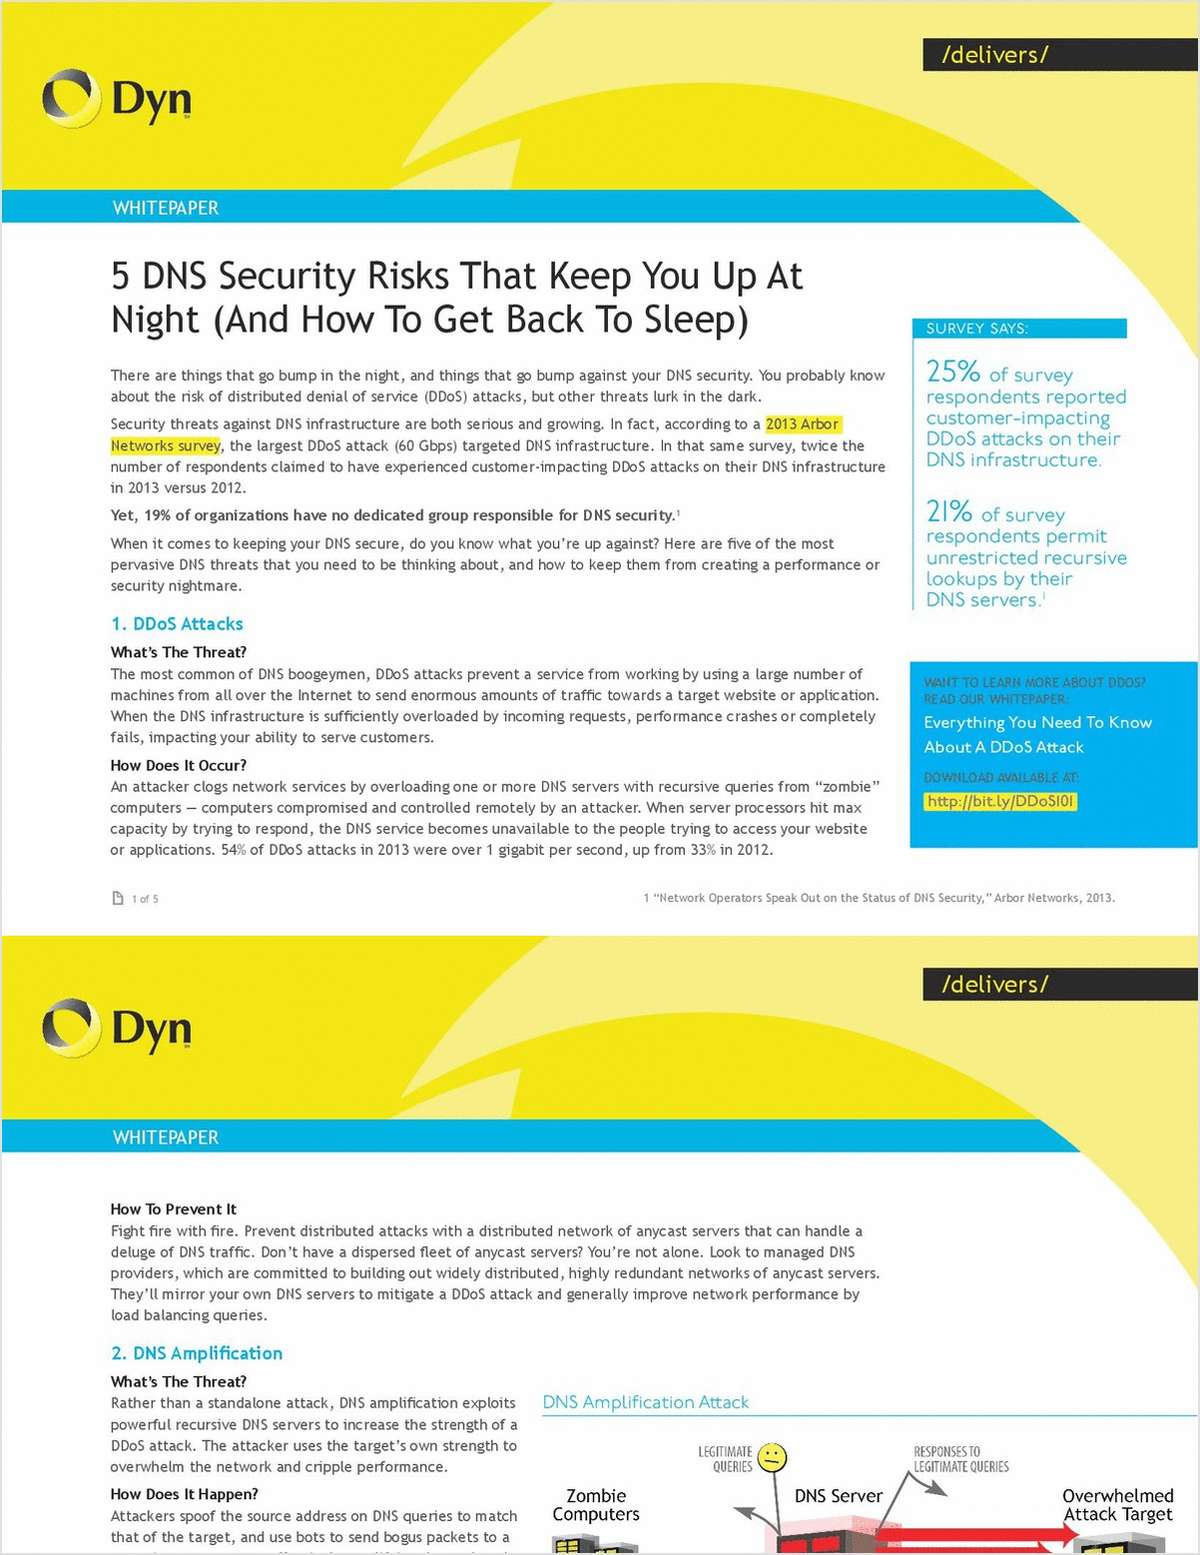 5 DNS Security Risks That Keep You Up At Night (And How To Get Back To Sleep)